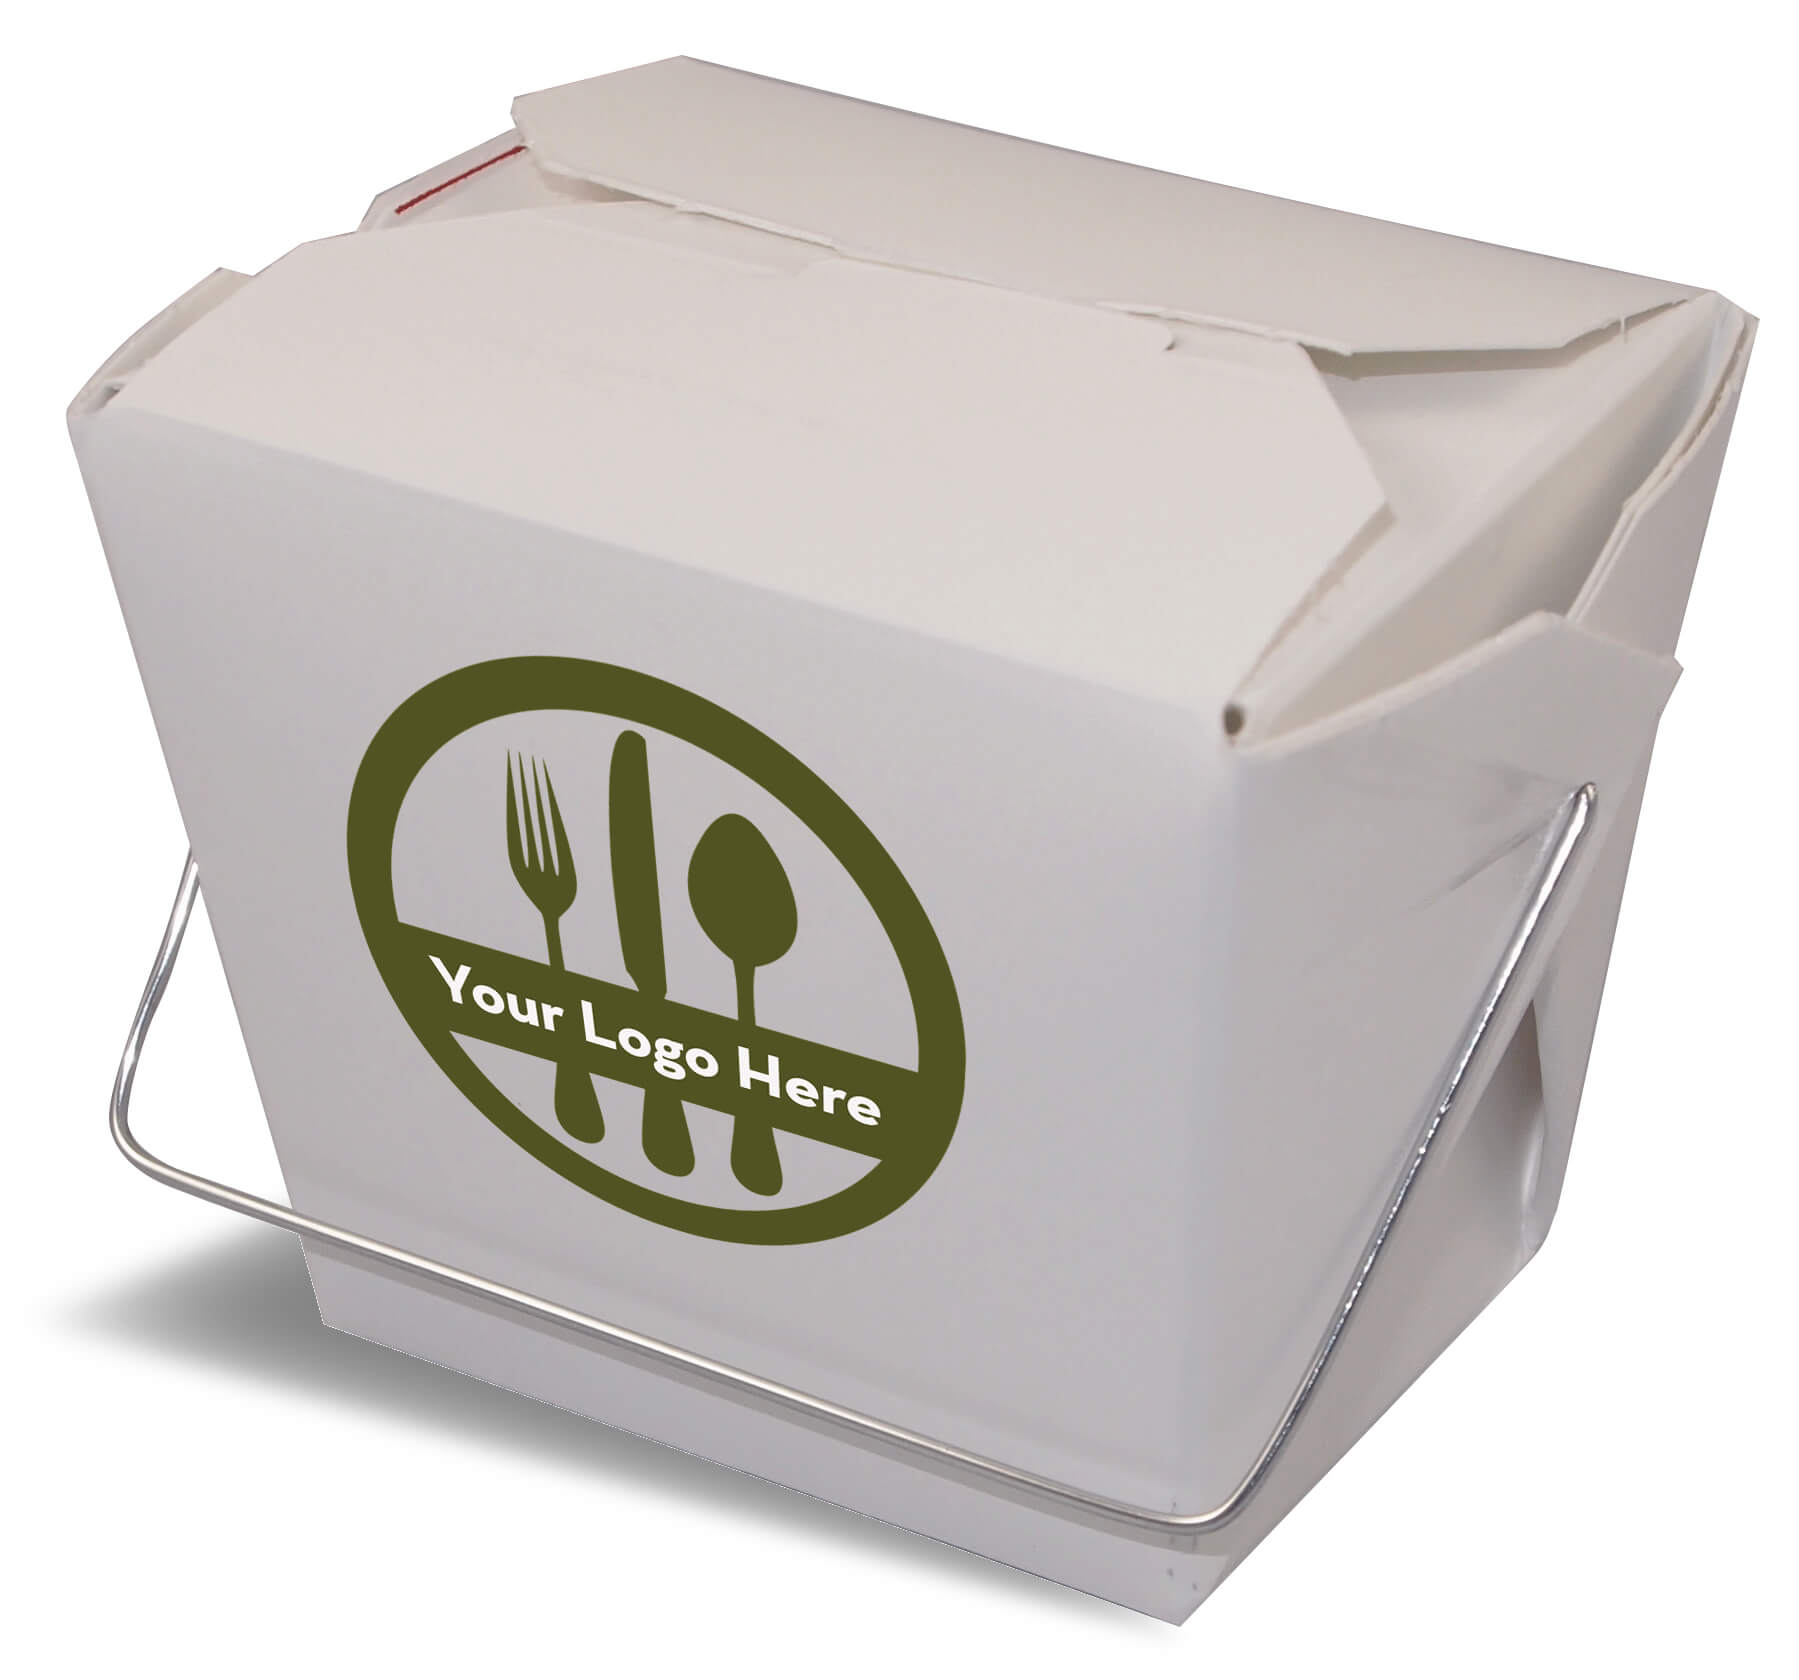 A rendering of a closed Fold-Pak Chinese food folding carton container with a printed logo.